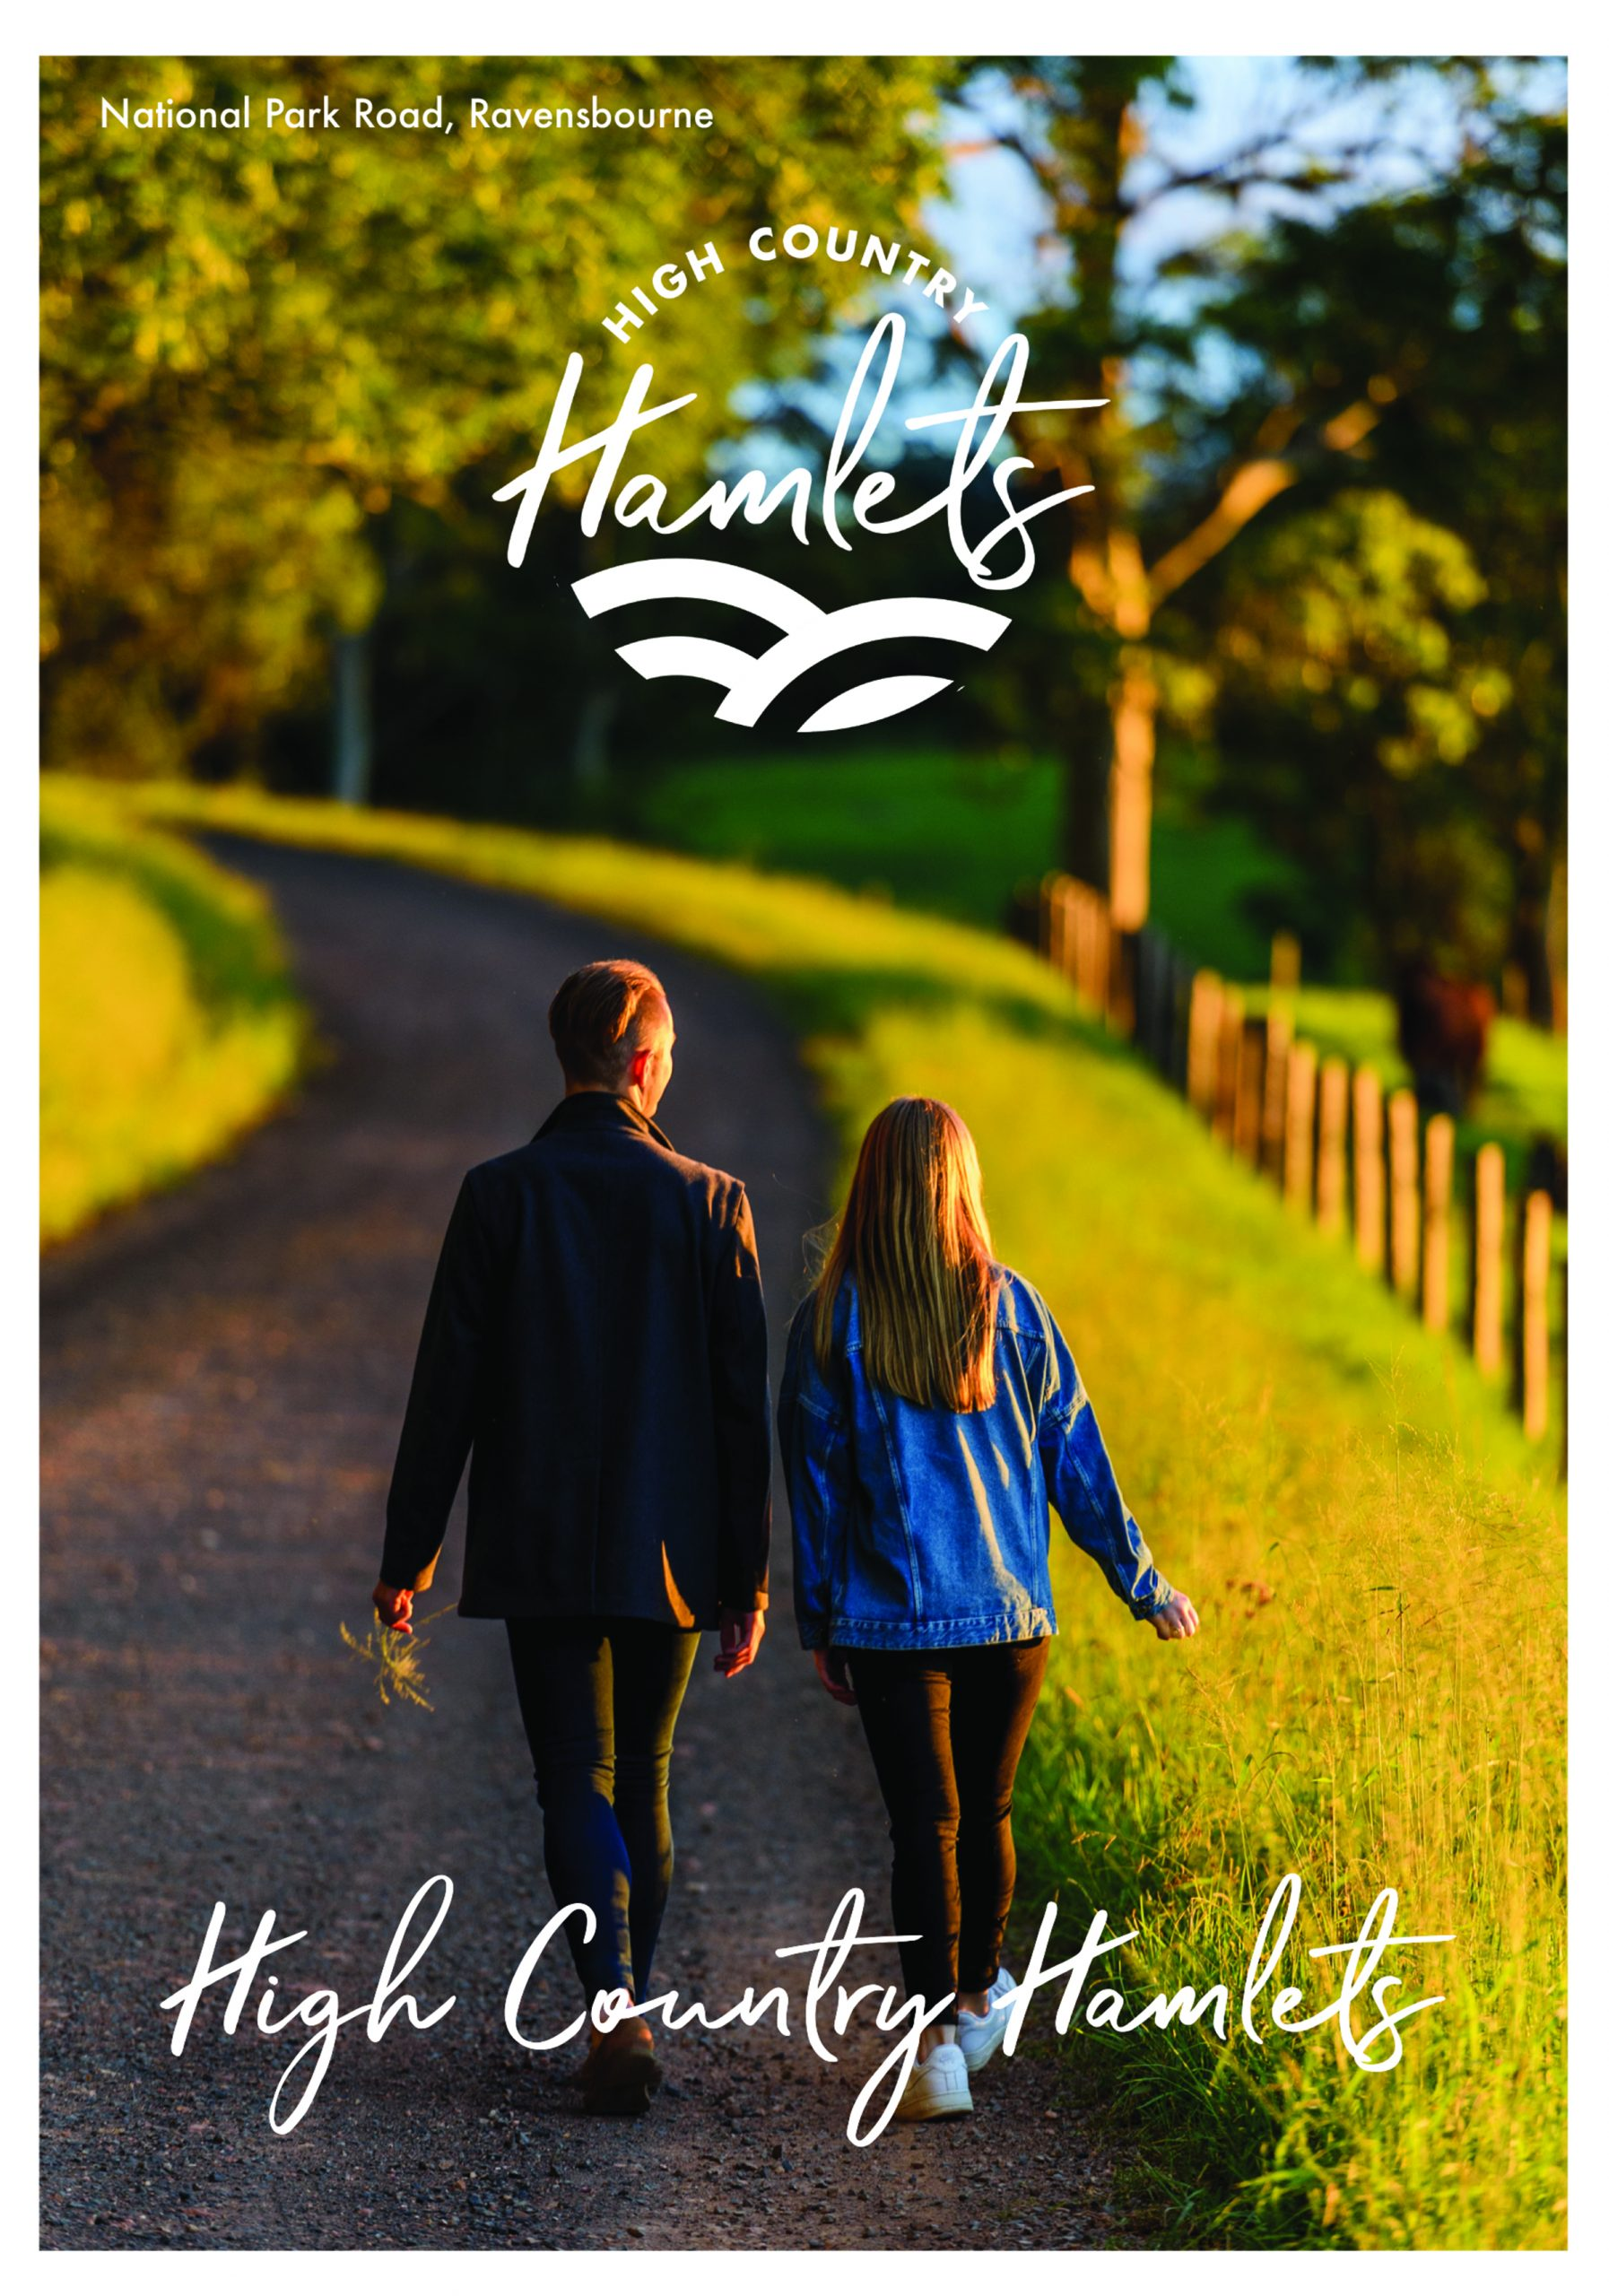 High Country Hamlets Visitor Guide